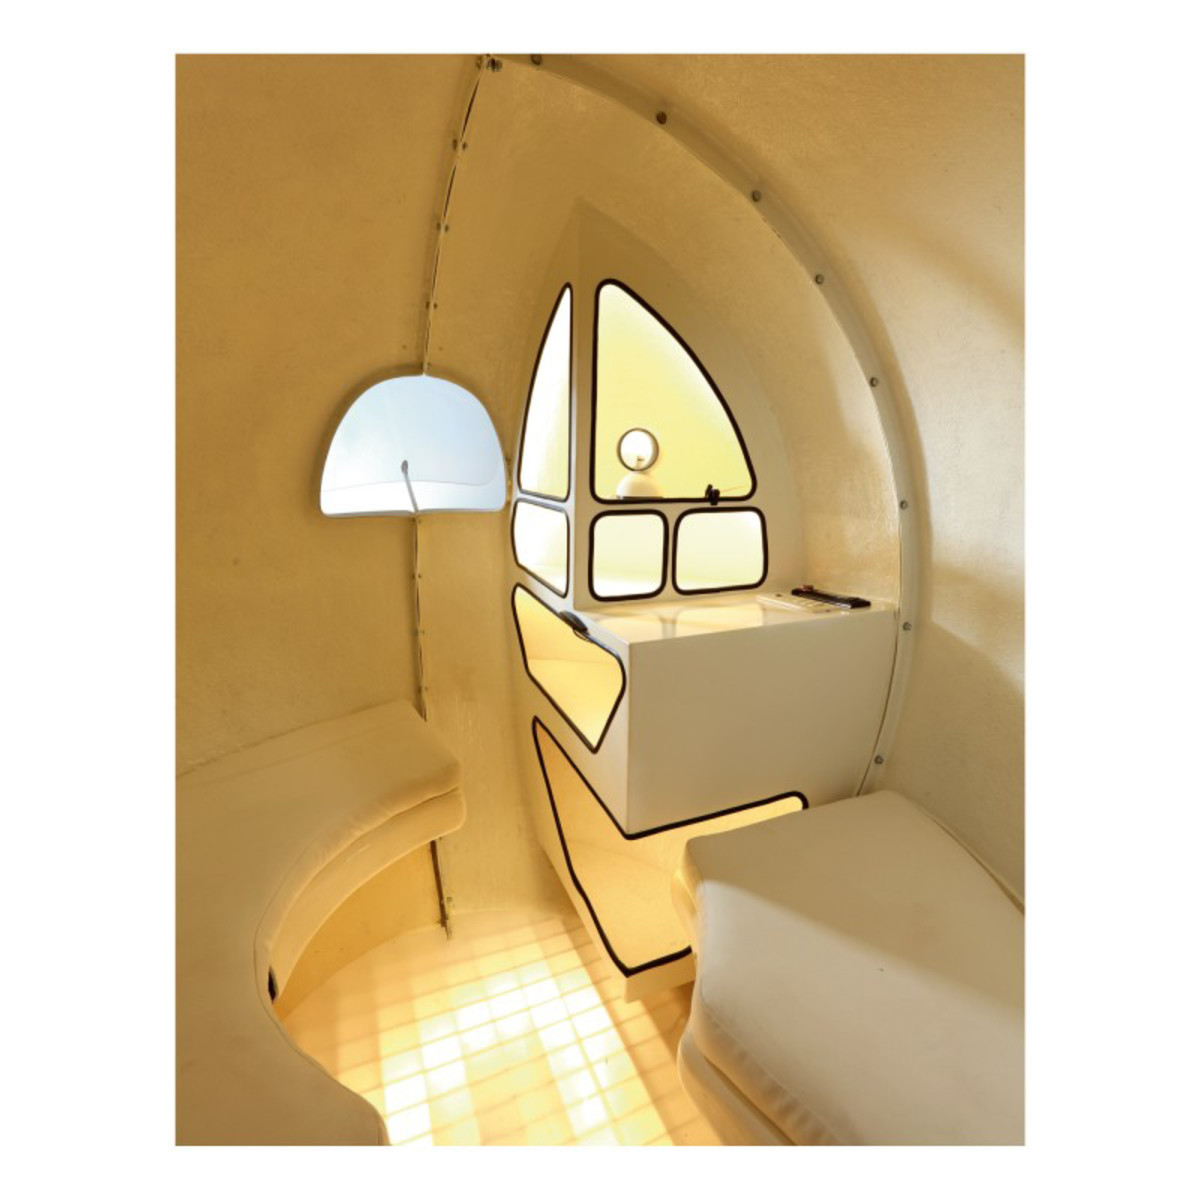 The interior of the Sphere. Ideal for one or two people, it can comfortably accommodate up to three.